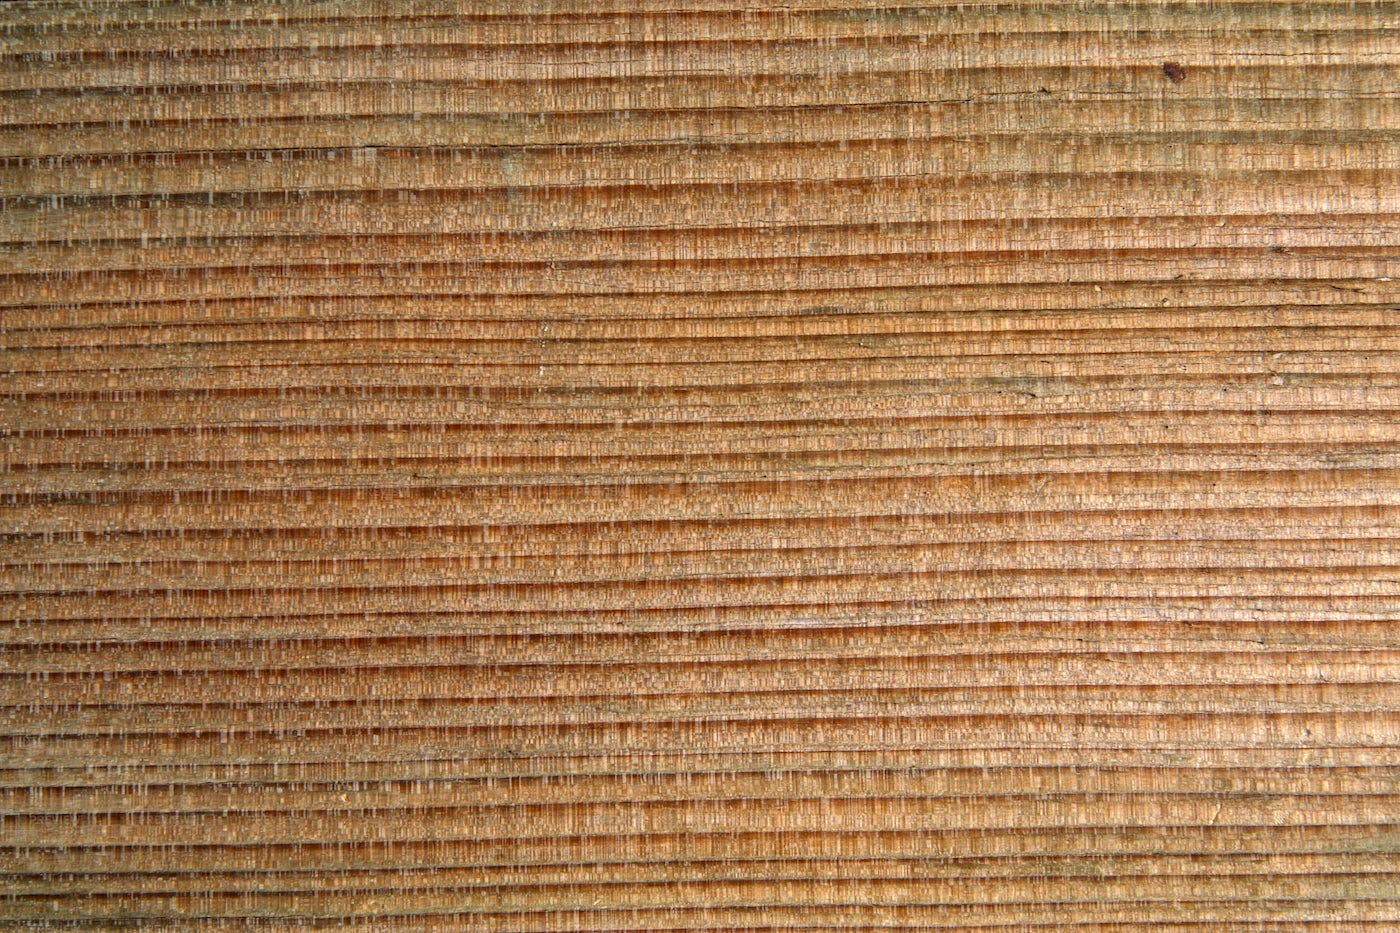 Compressed Wood Background: Stock Photos